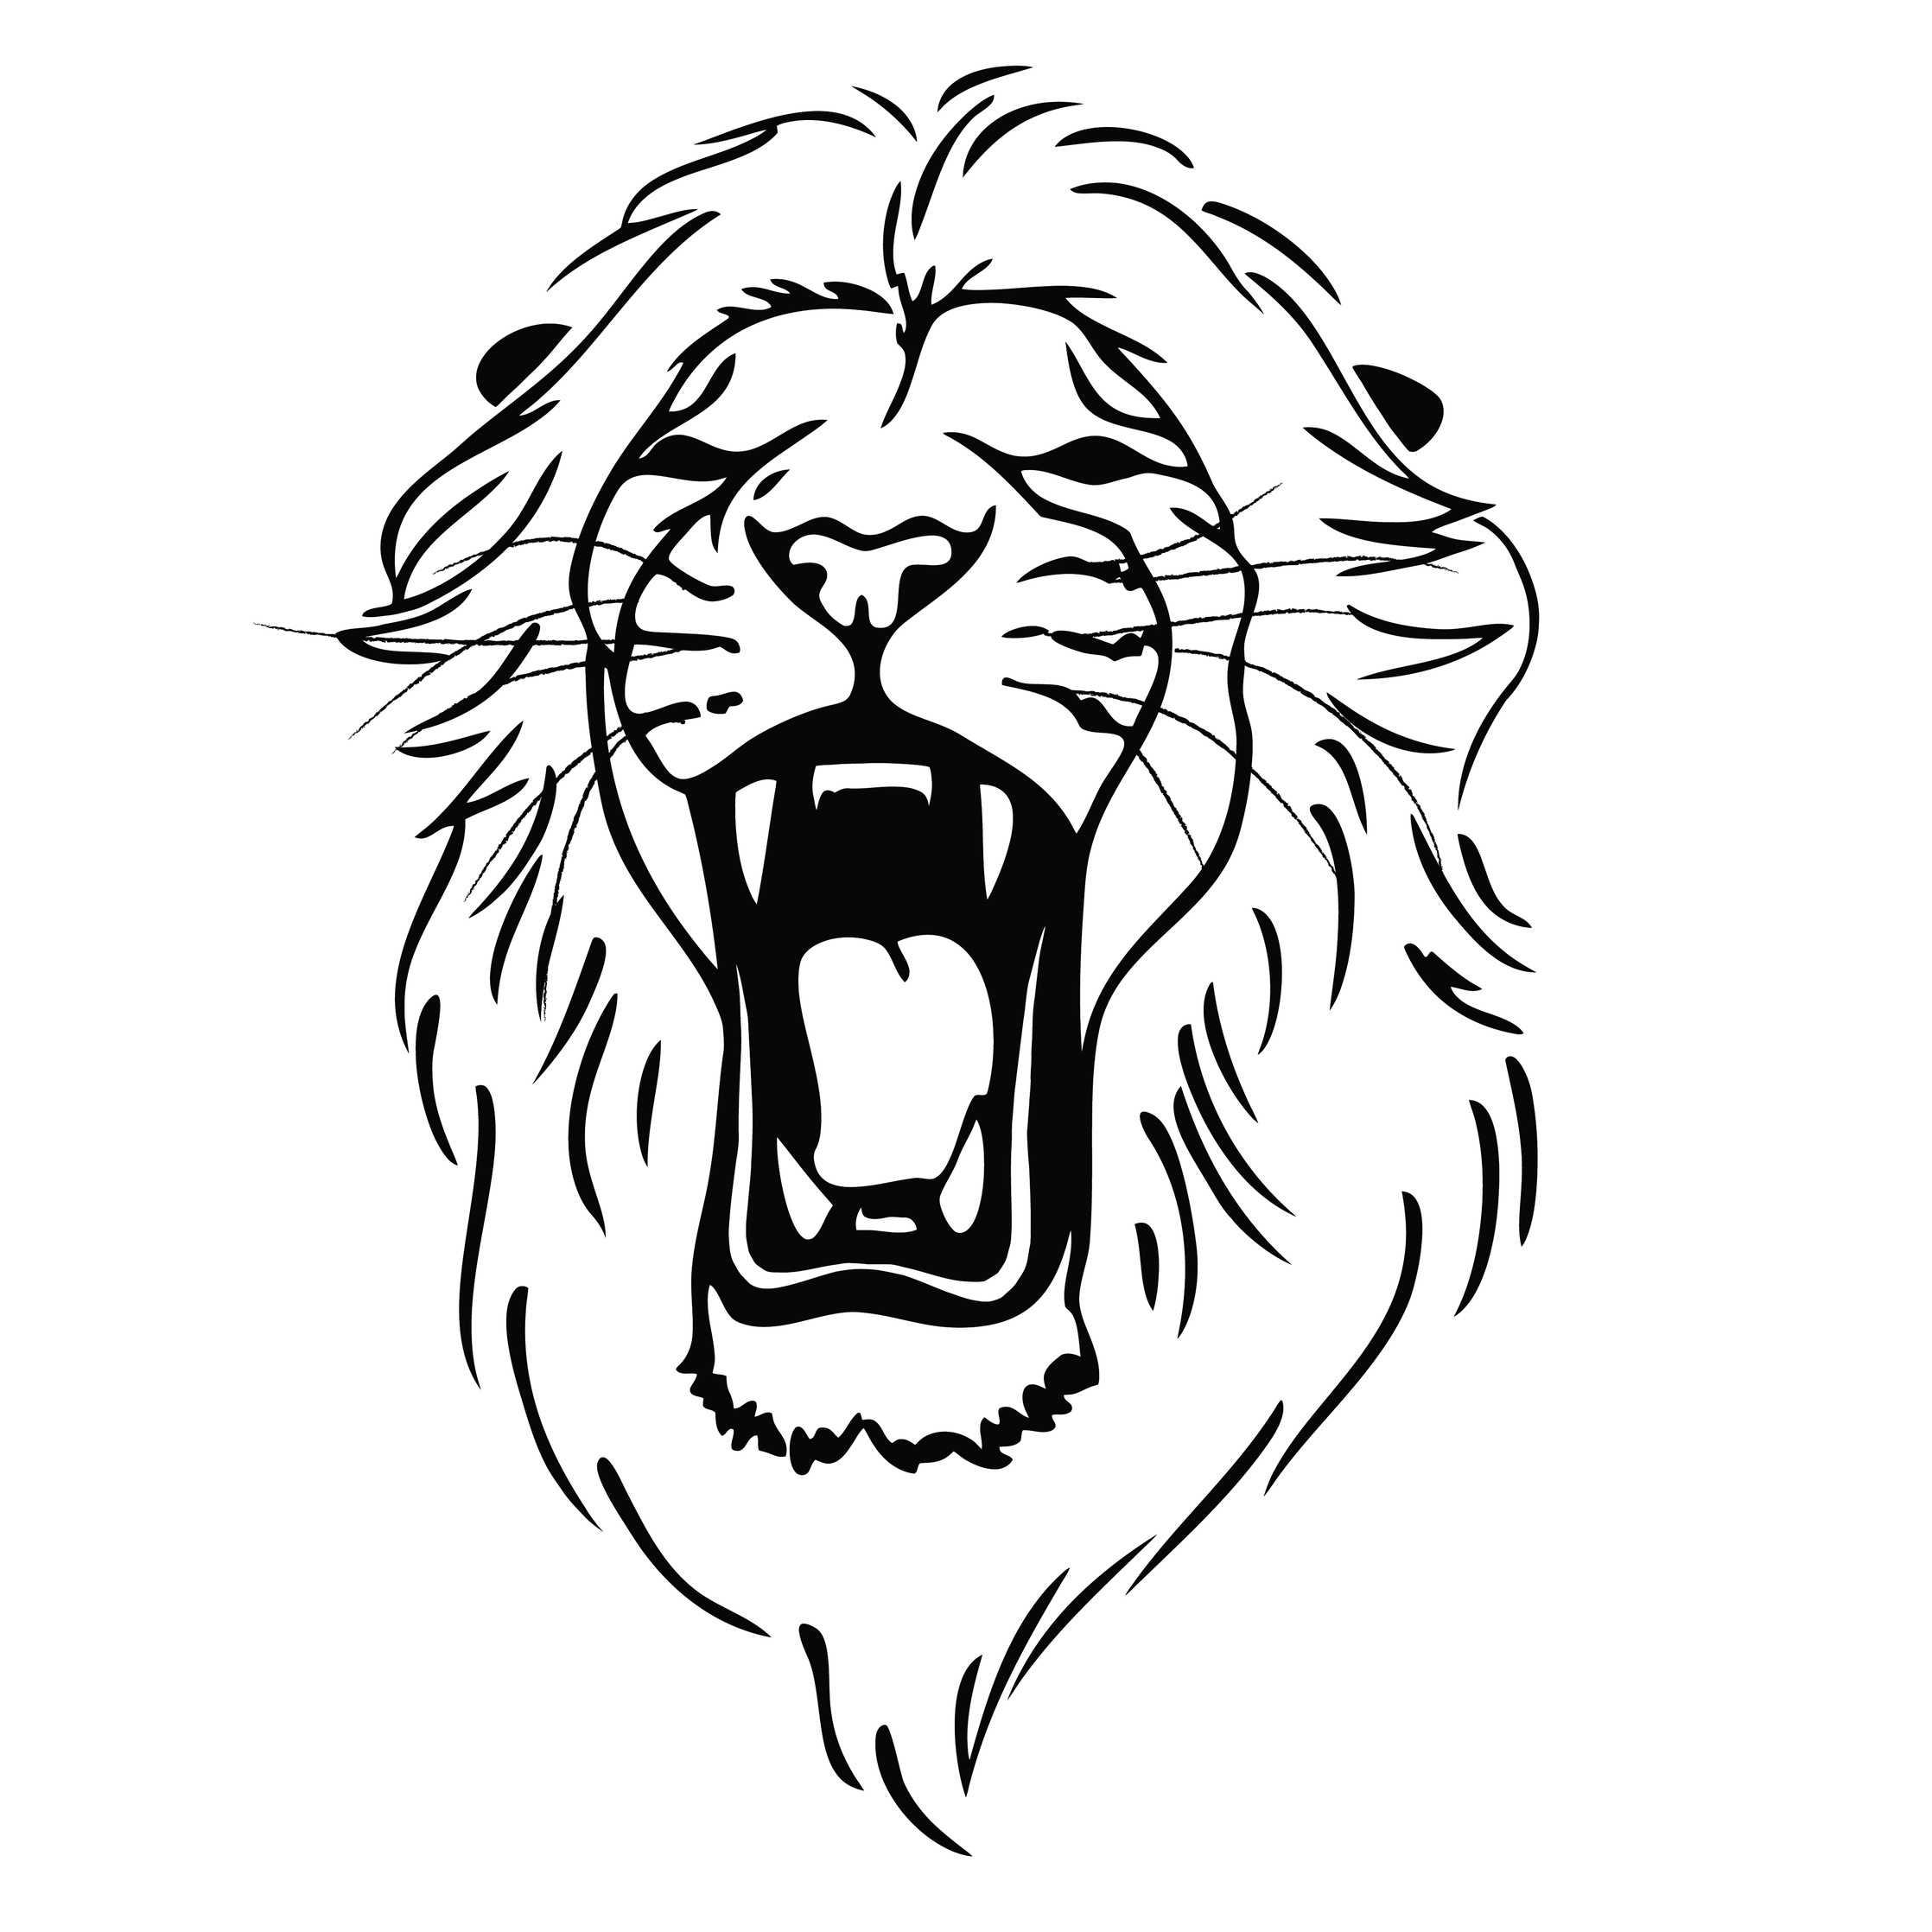 Lion Line Drawing - Cliparts.co